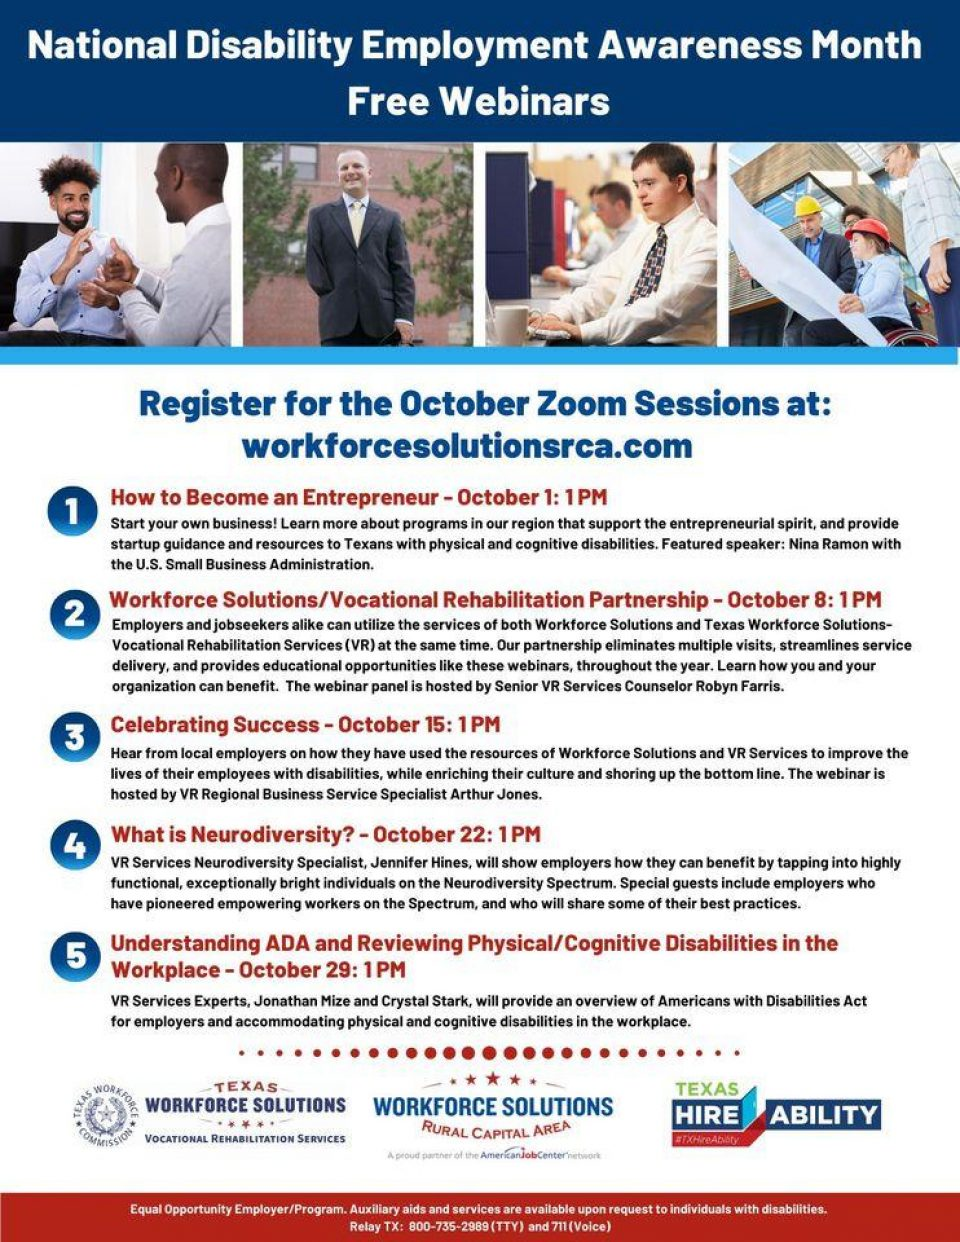 Help Increase Access and Opportunity! Register to Participate in Free National Disability Employment Awareness Month Webinars